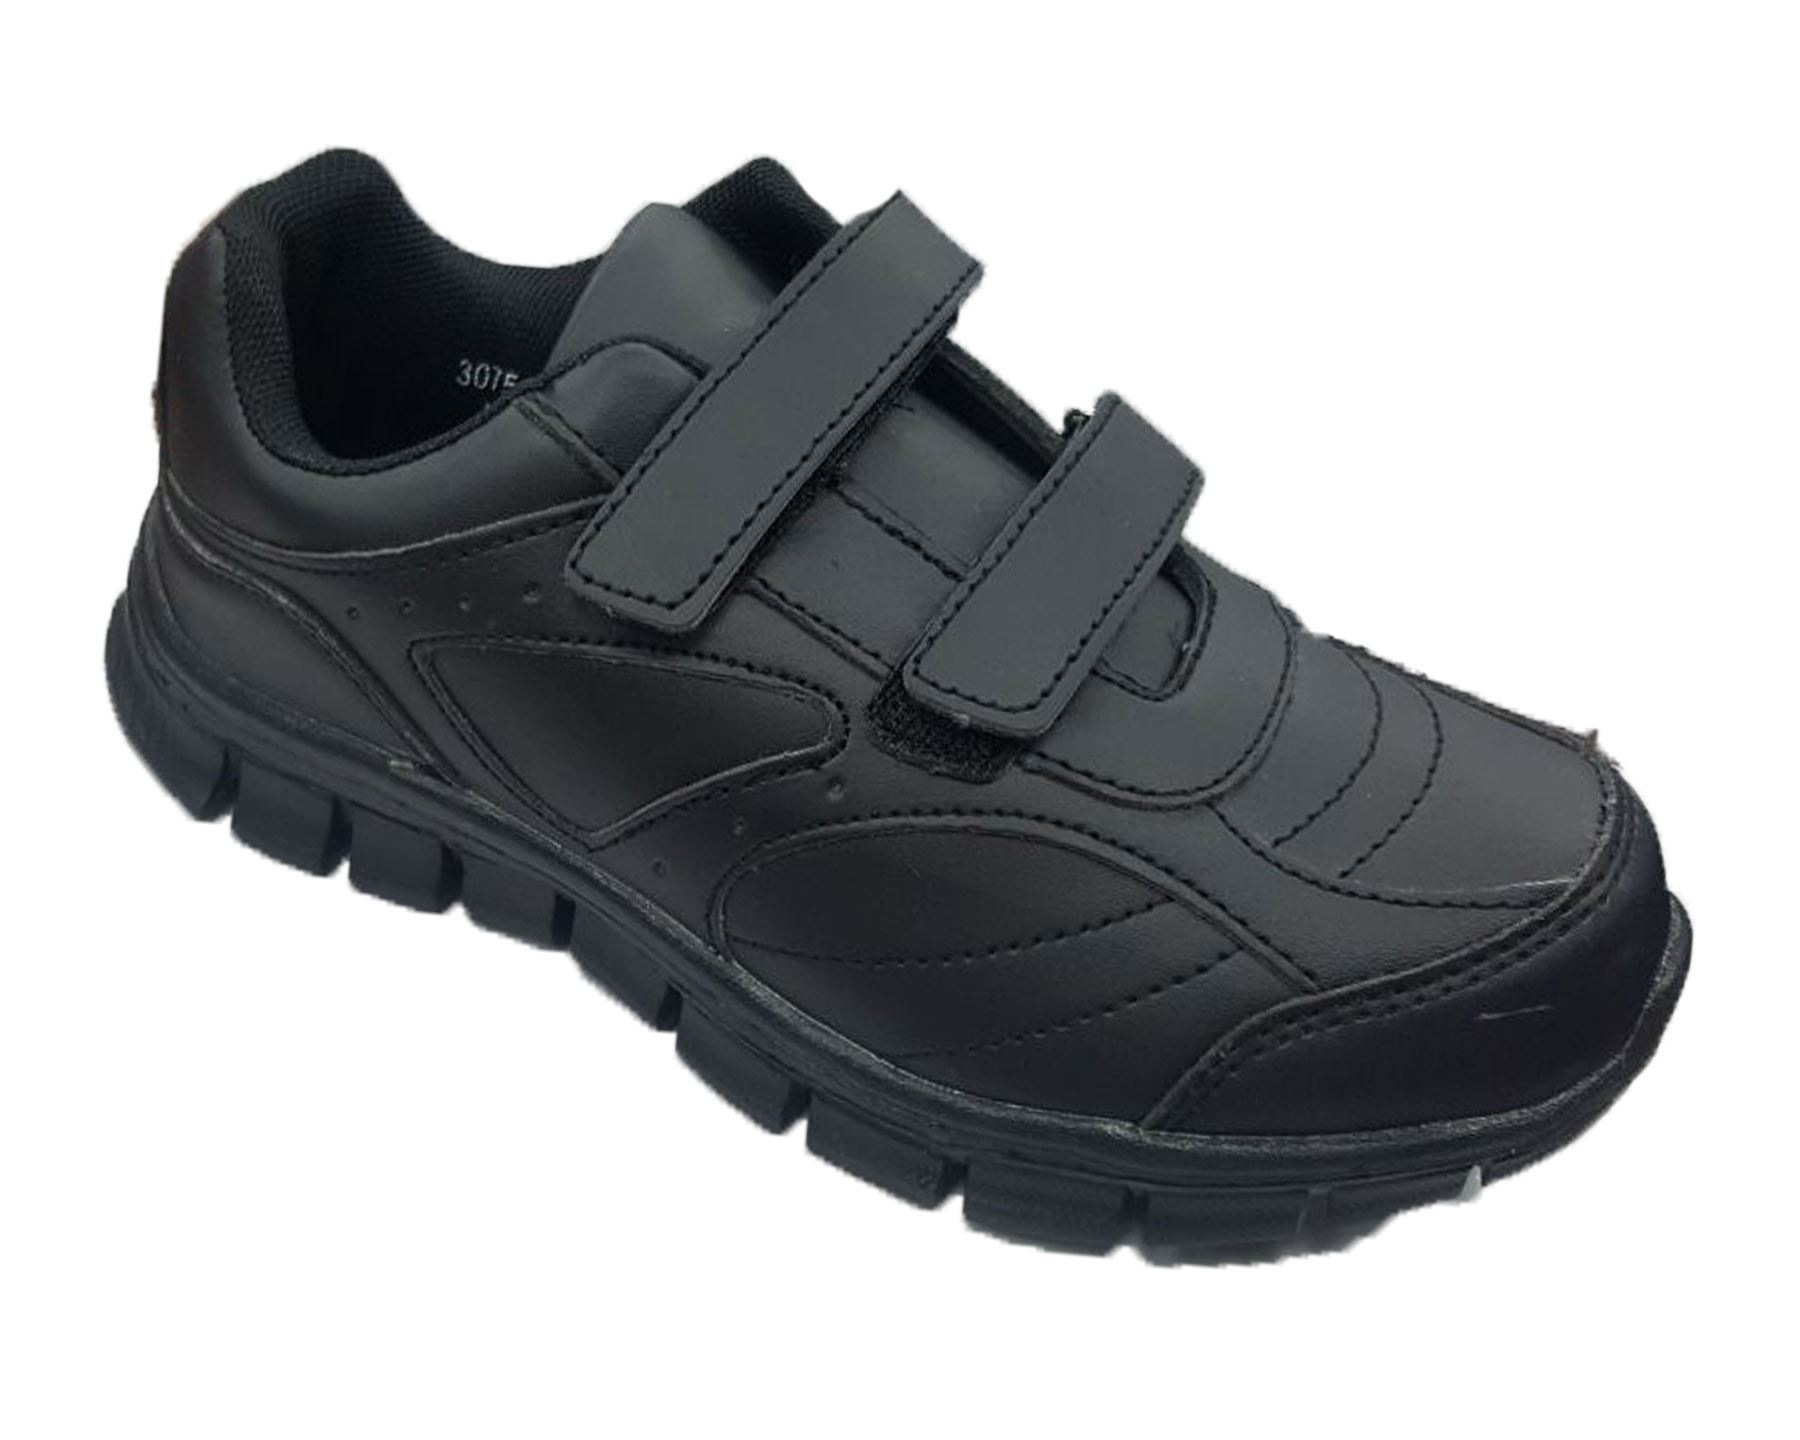 BX Team Kids Boys Back to School Formal Black Shoes Sizes 10-2 30 ... 83573897cd01